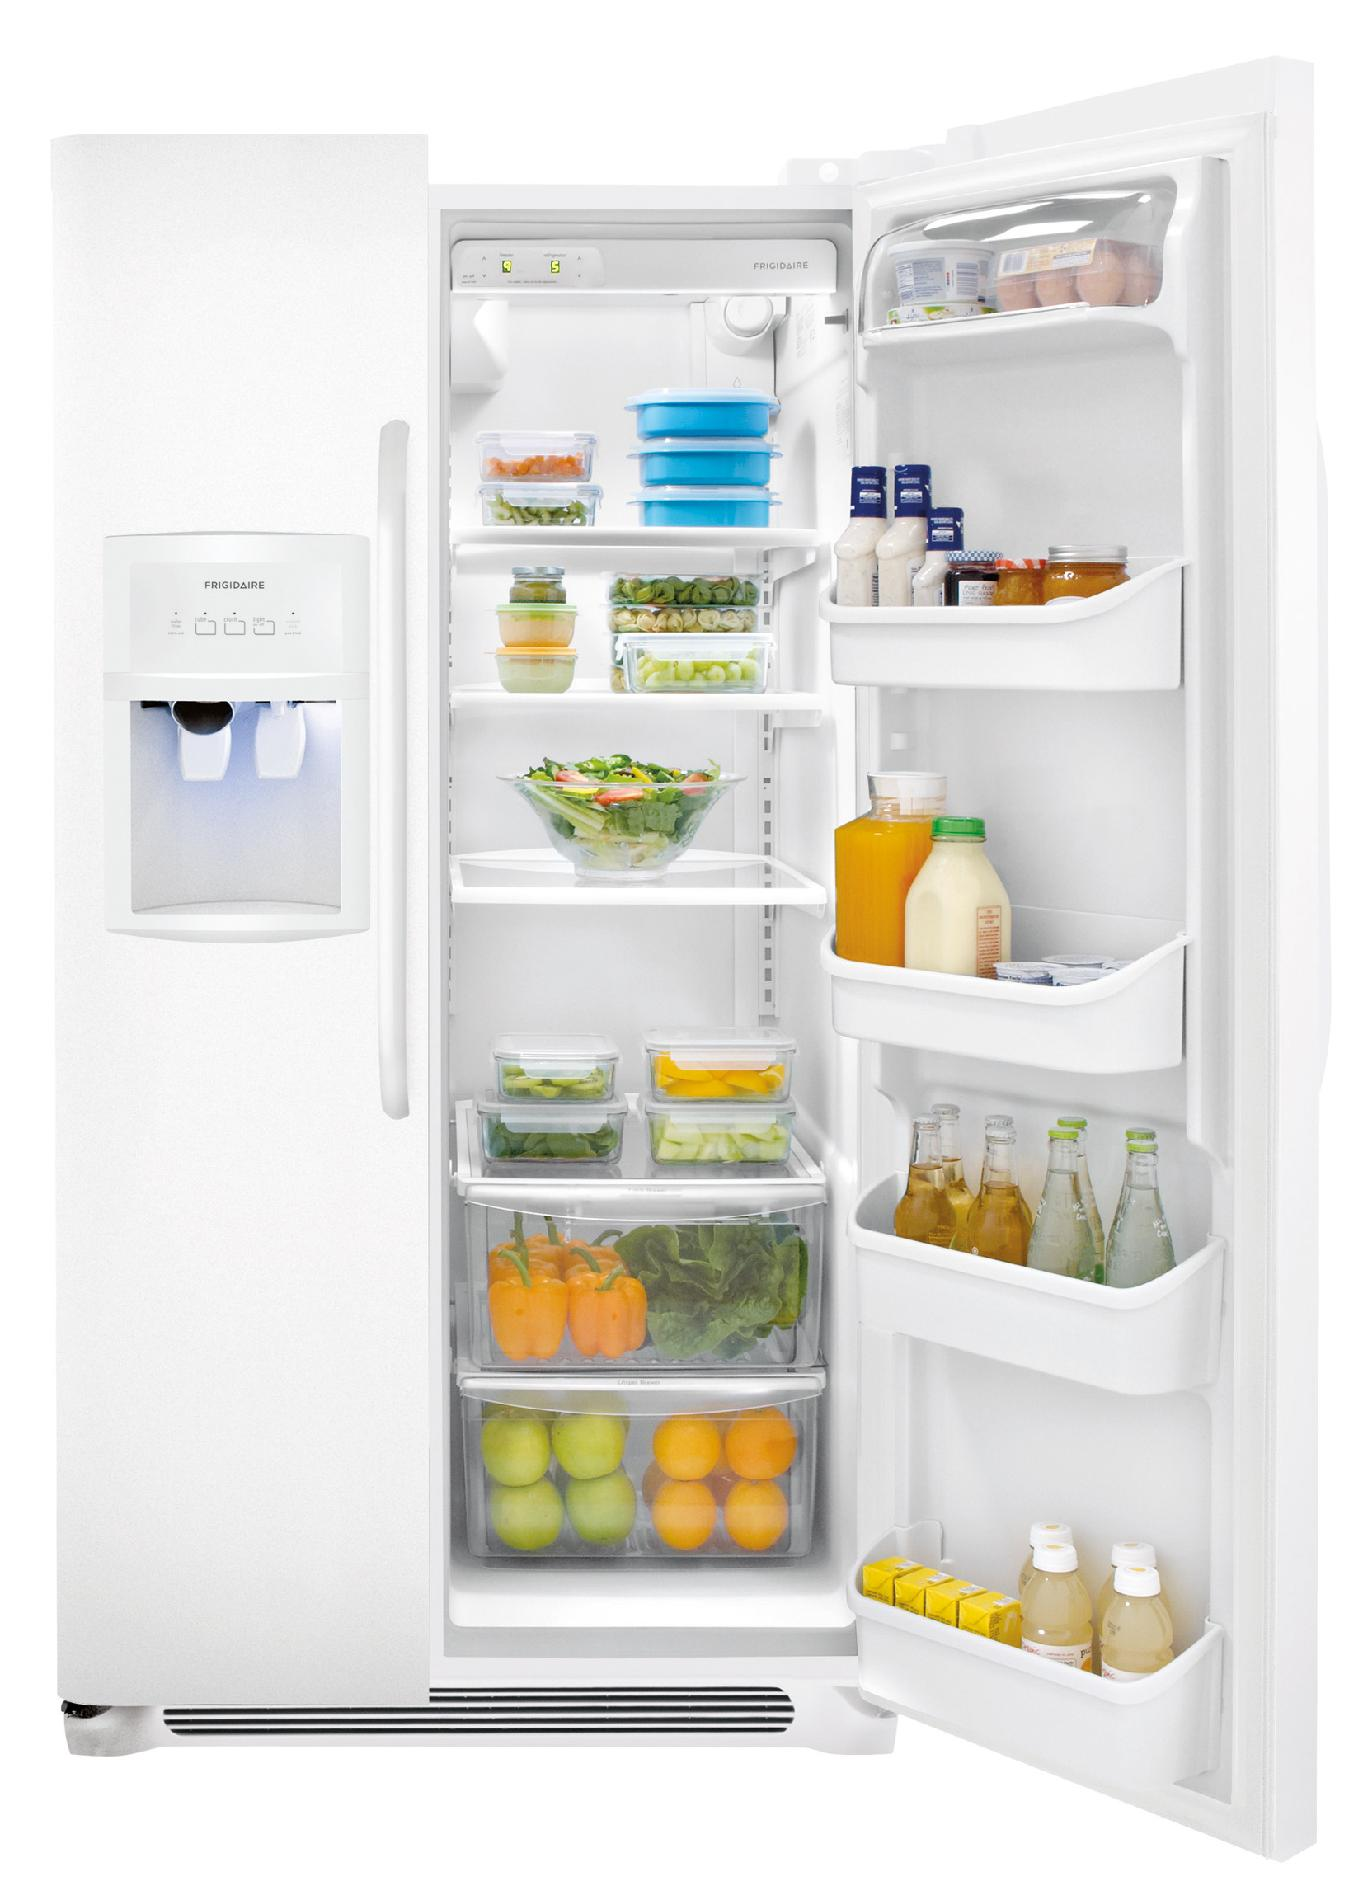 Frigidaire 22.6 cu. ft. Side-by-Side Refrigerator - White